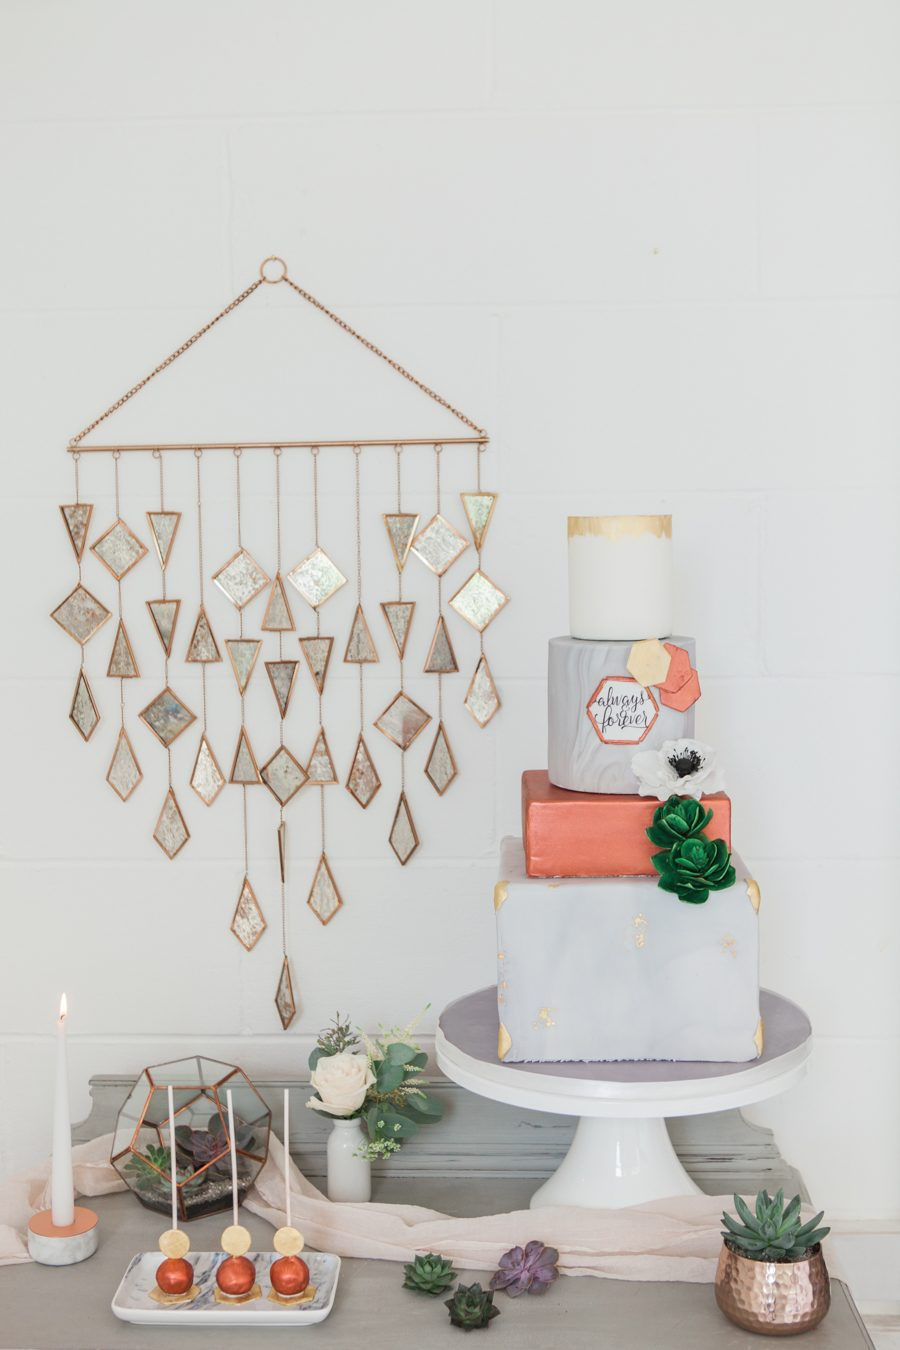 Copper metallic and succulent wedding style ideas, images by Amanda Karen Photography (28)